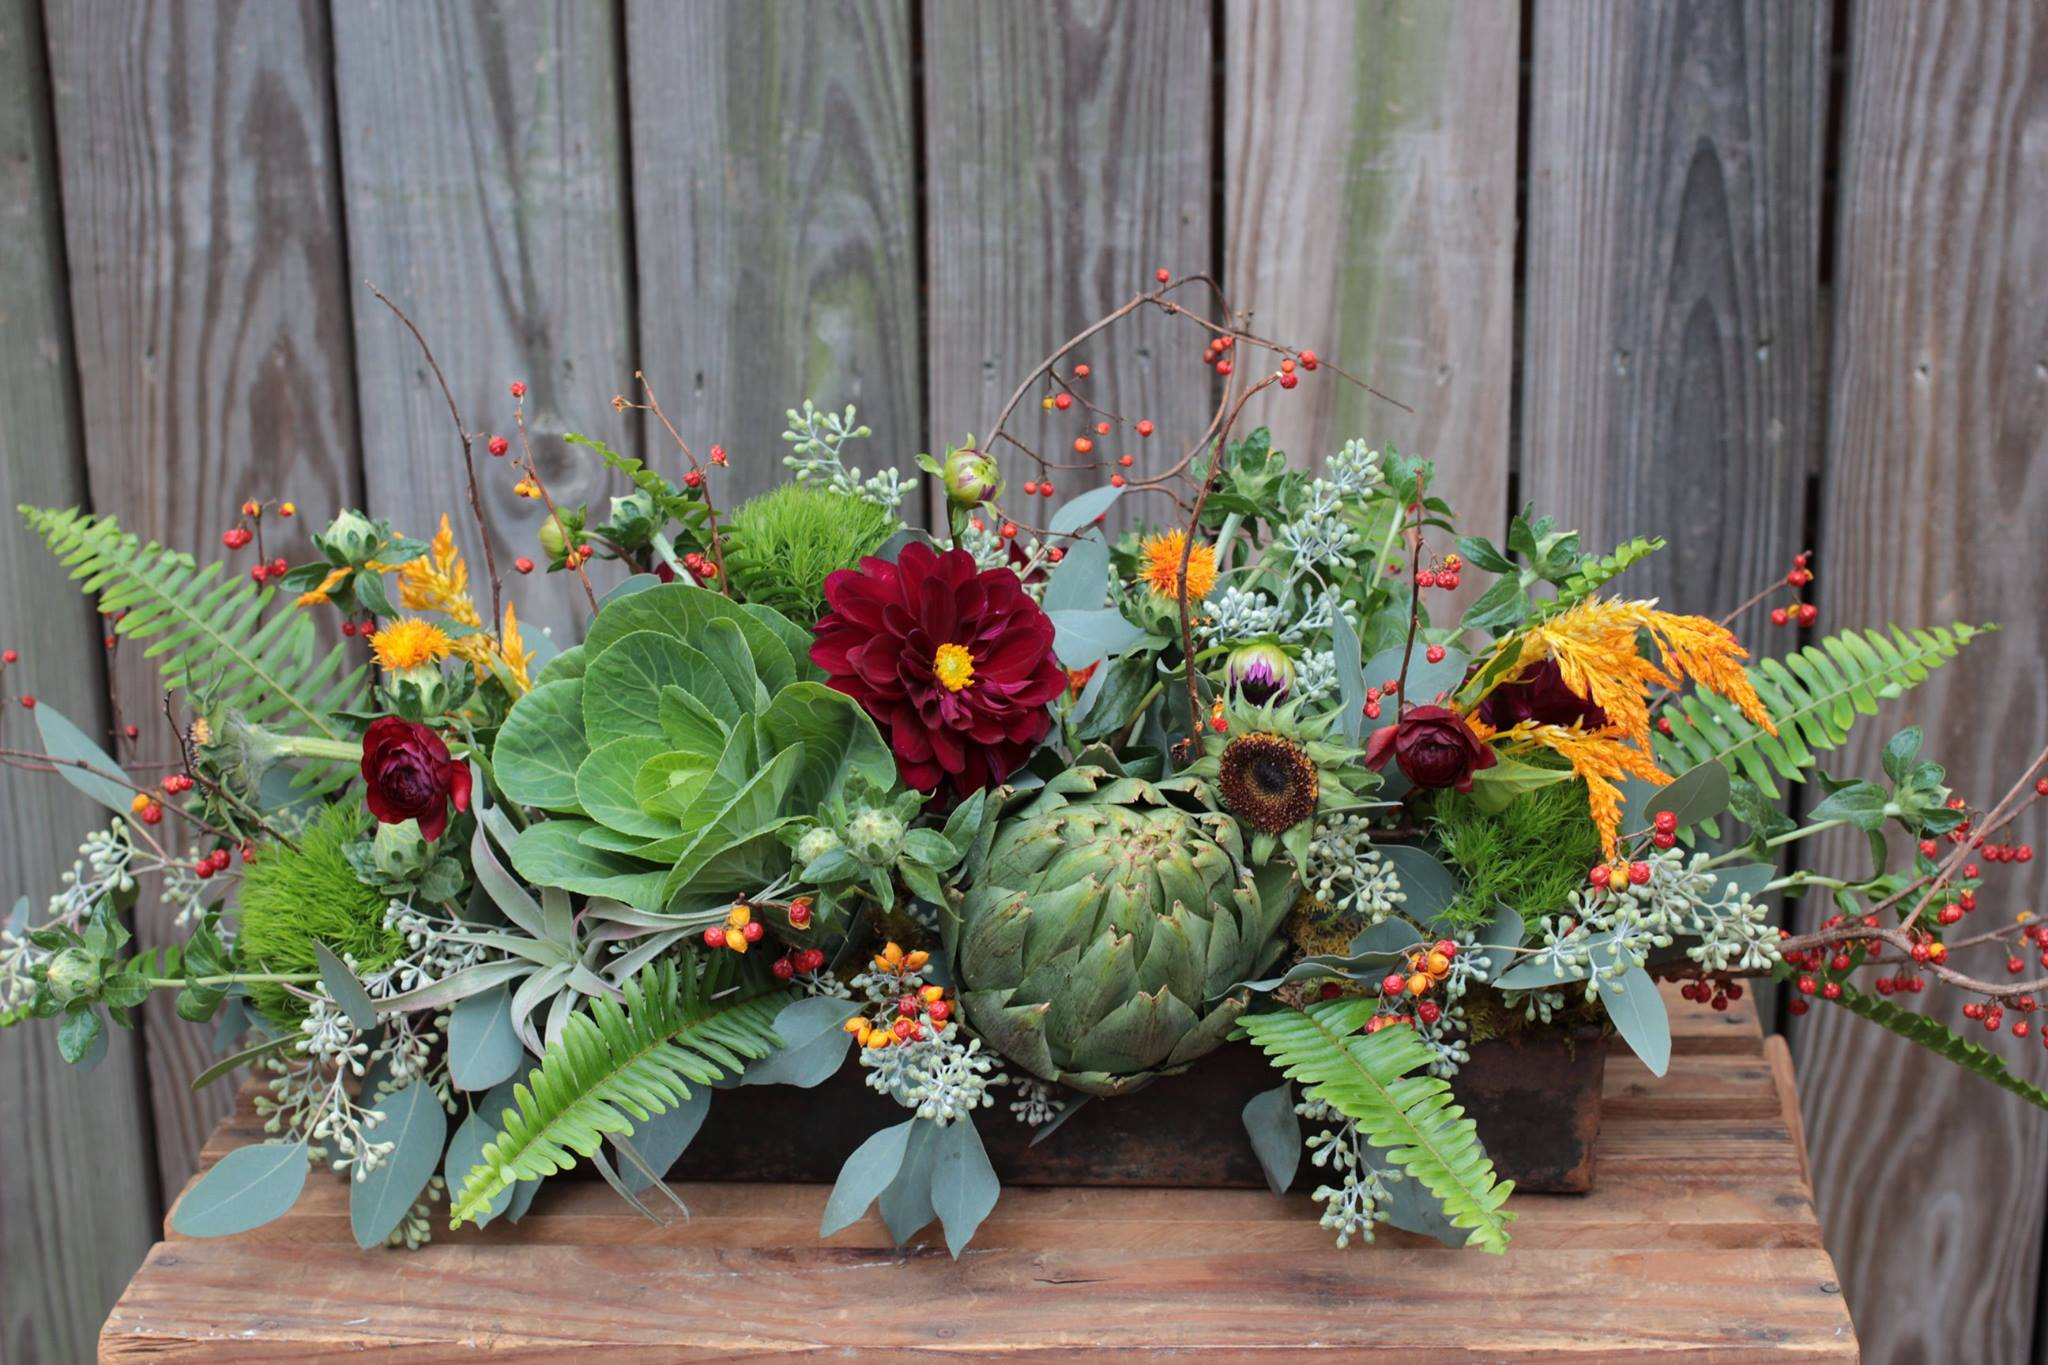 An arrangement featuring artichoke, cabbage, bittersweet, dahlias among others.